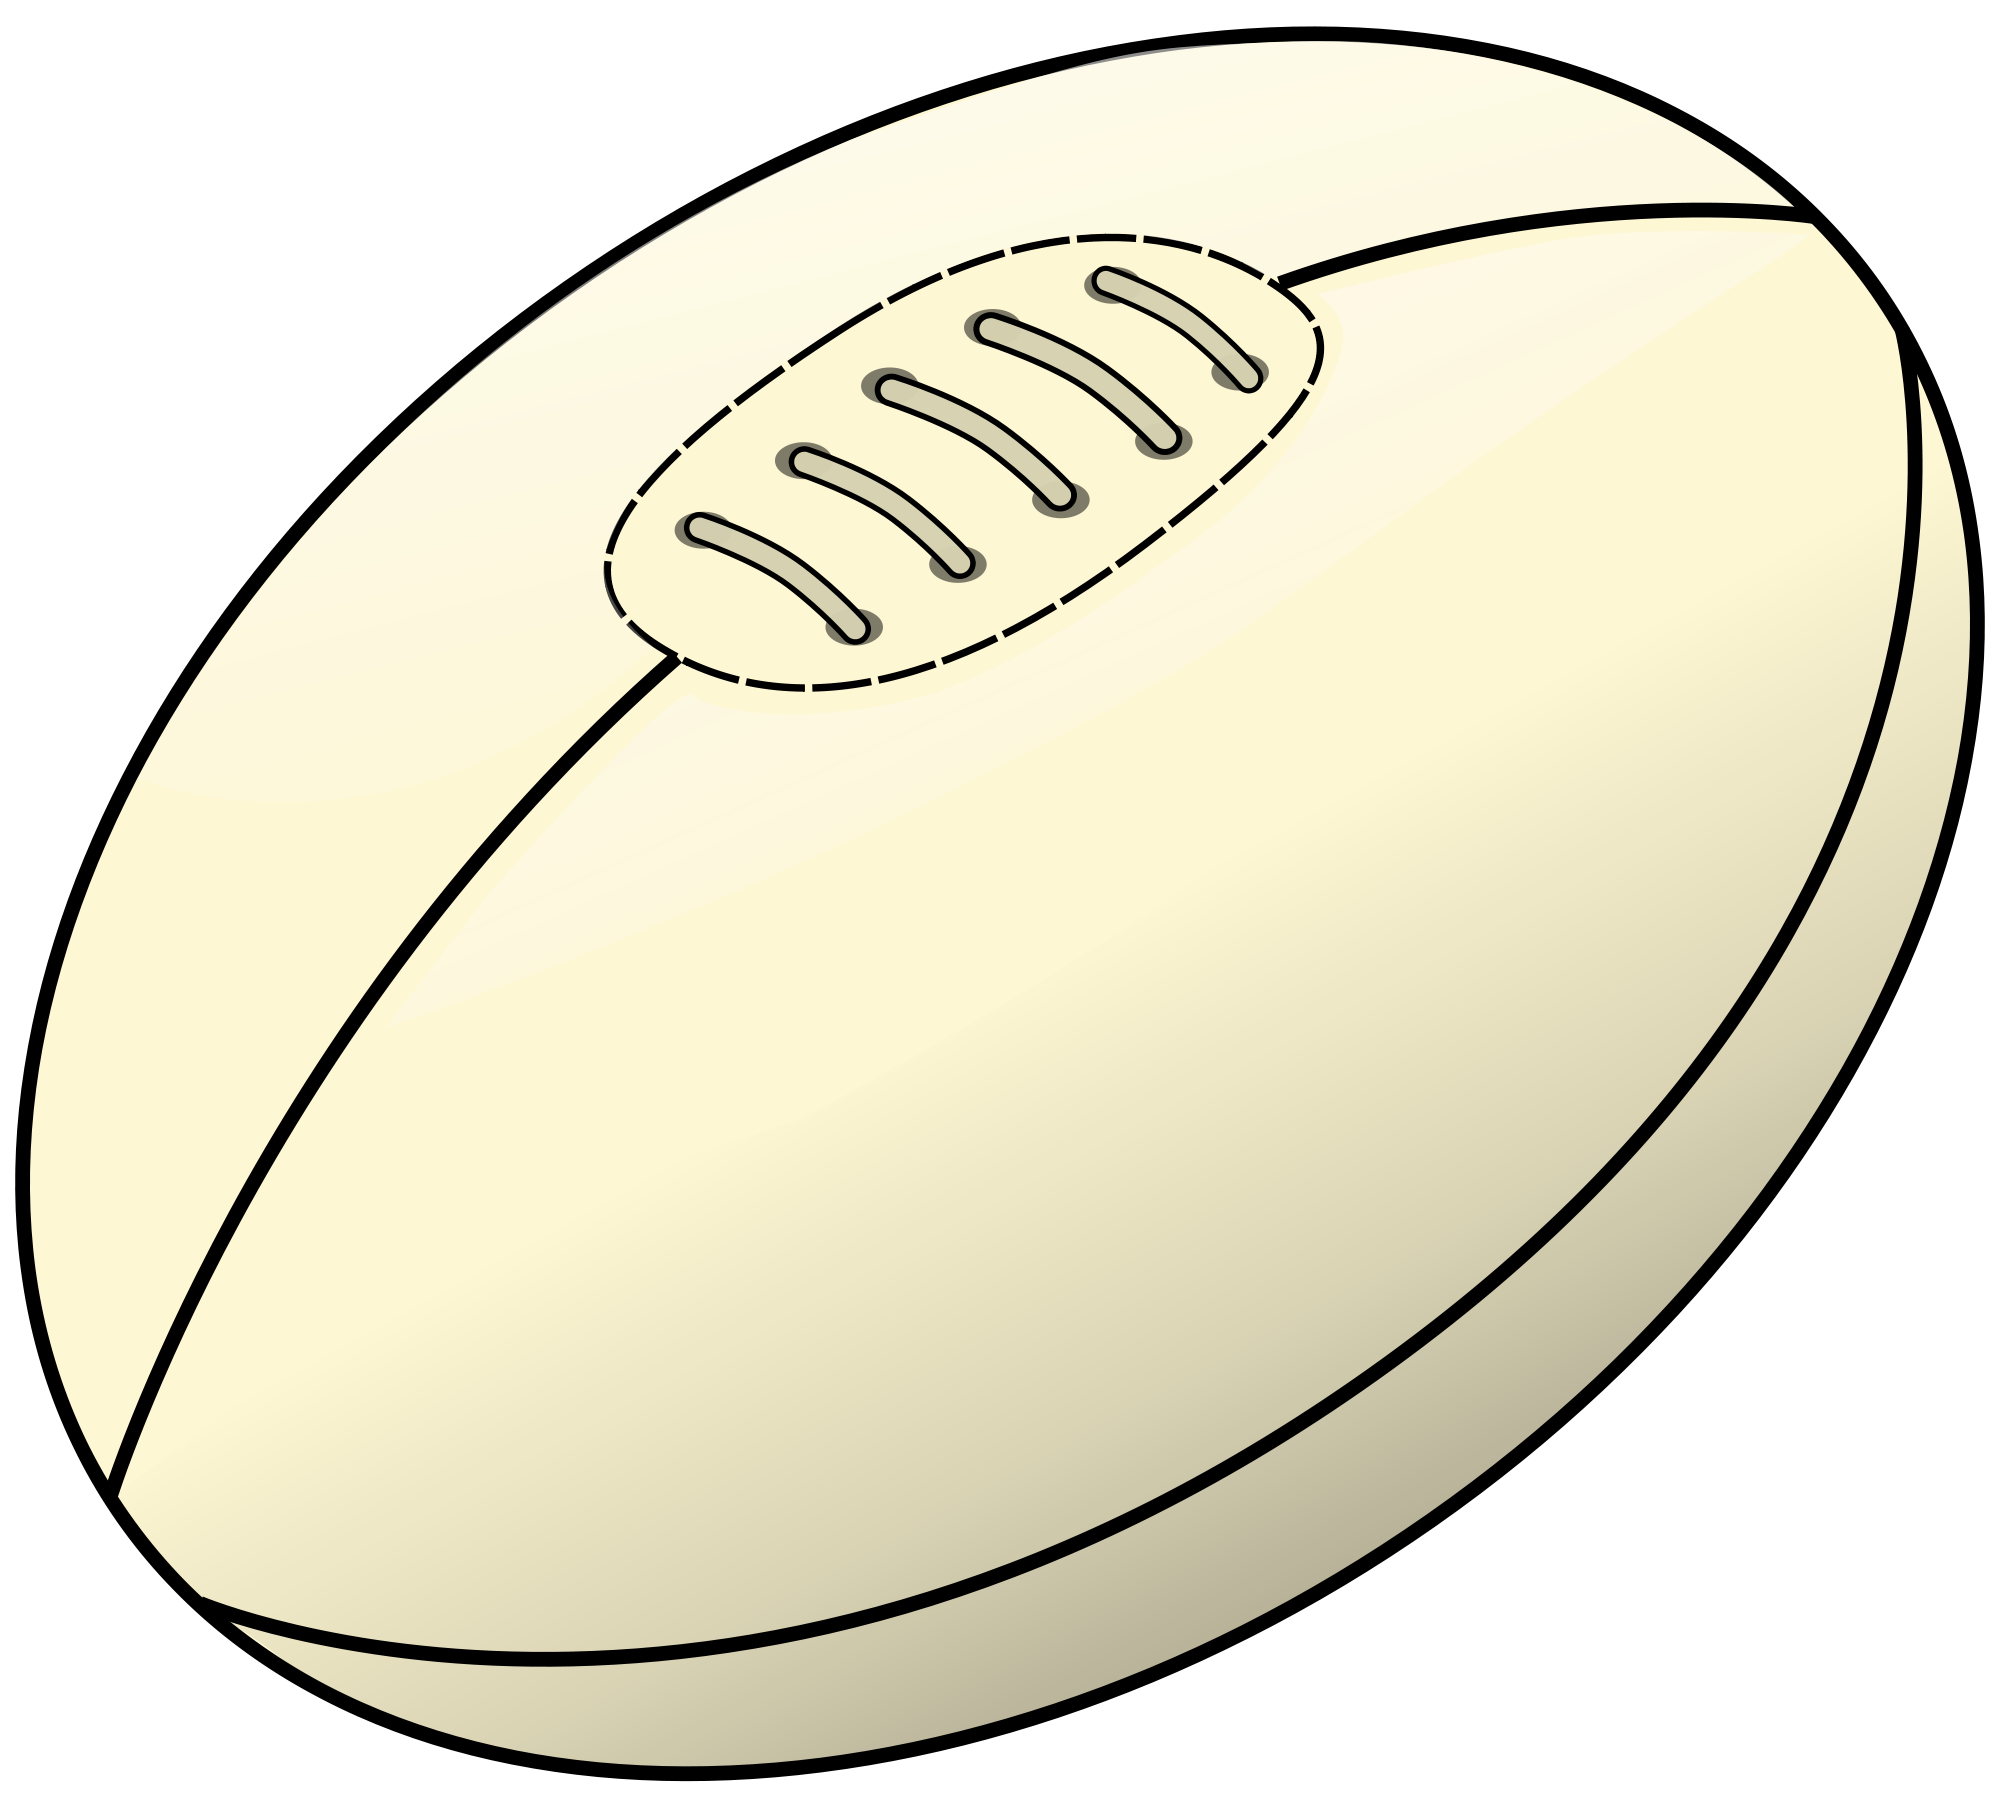 Ball clipart rugby union Svg ball File:Ru Wikimedia Commons